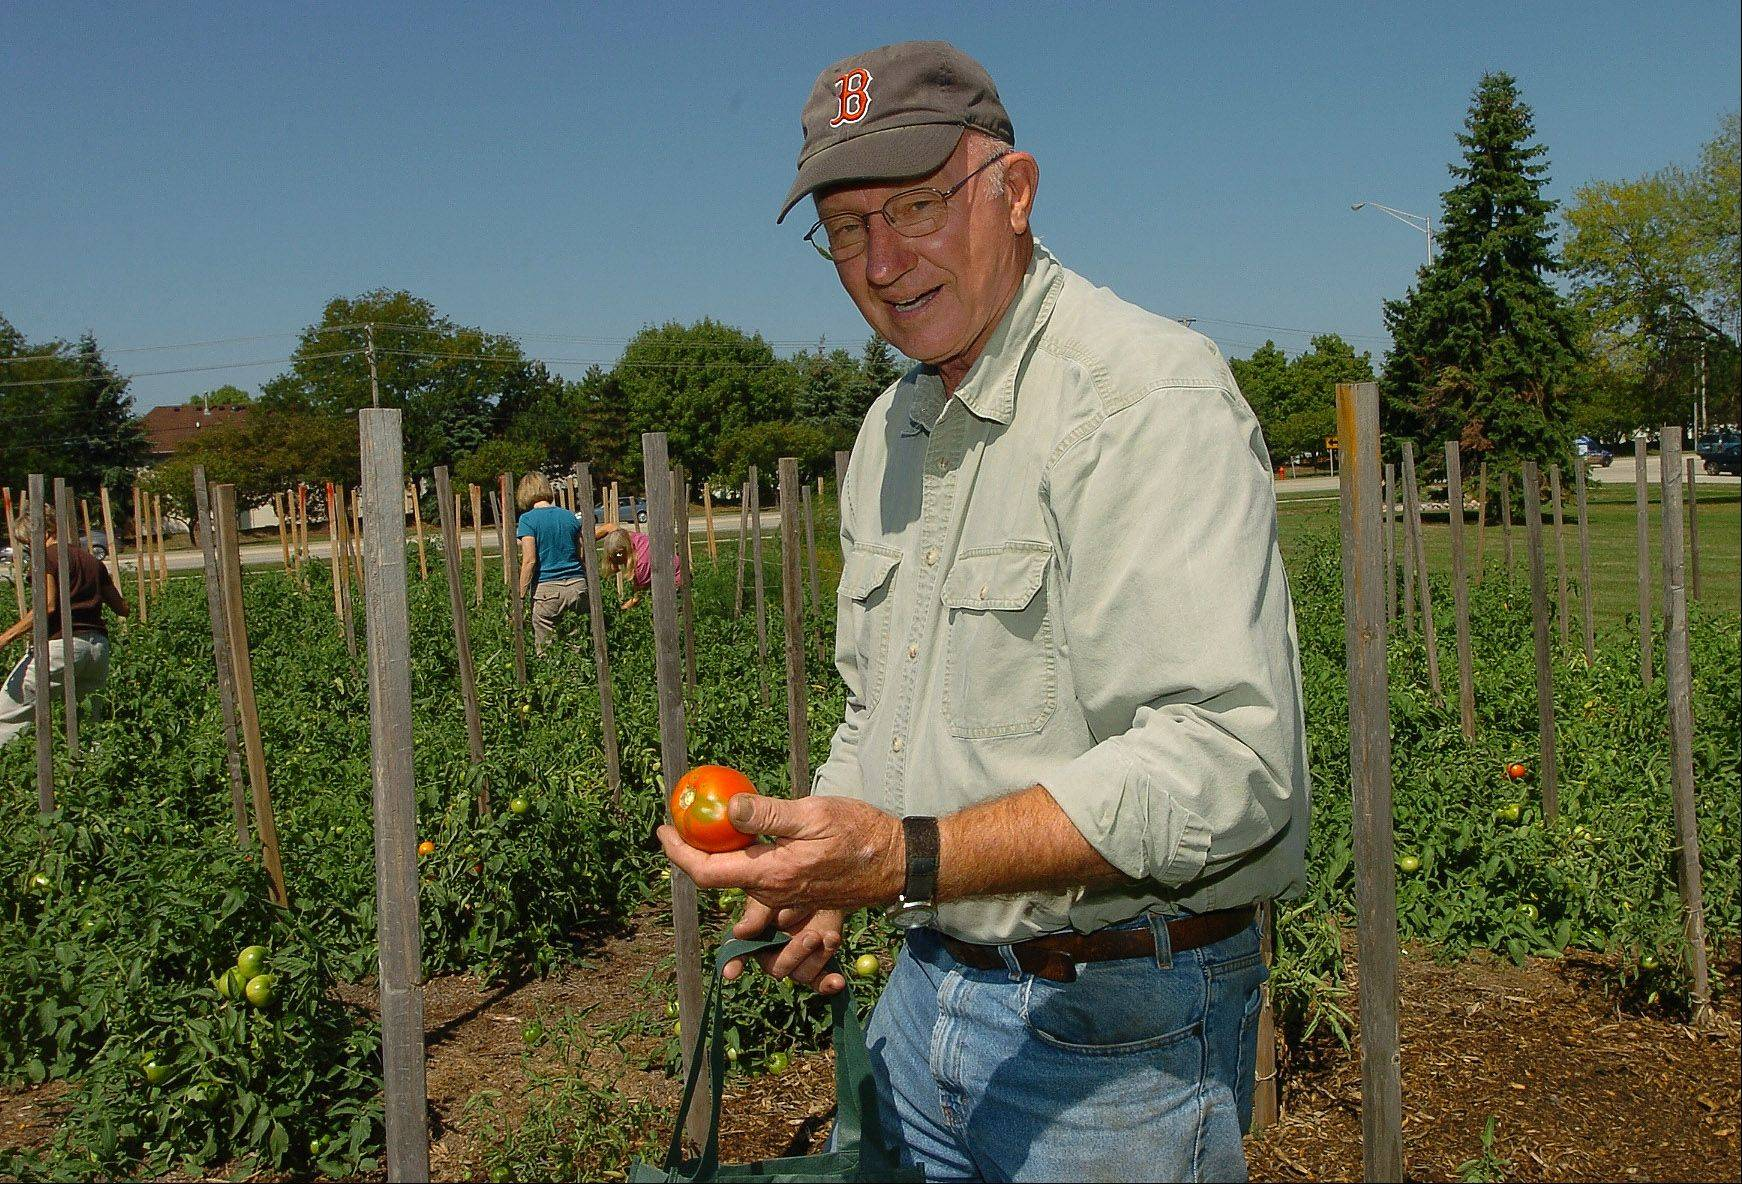 This is the fourth year that Steven Larson has led fellow congregants at Covenant Church in Schaumburg in a garden ministry, donating the harvest to the Schaumburg Township Food Pantry.